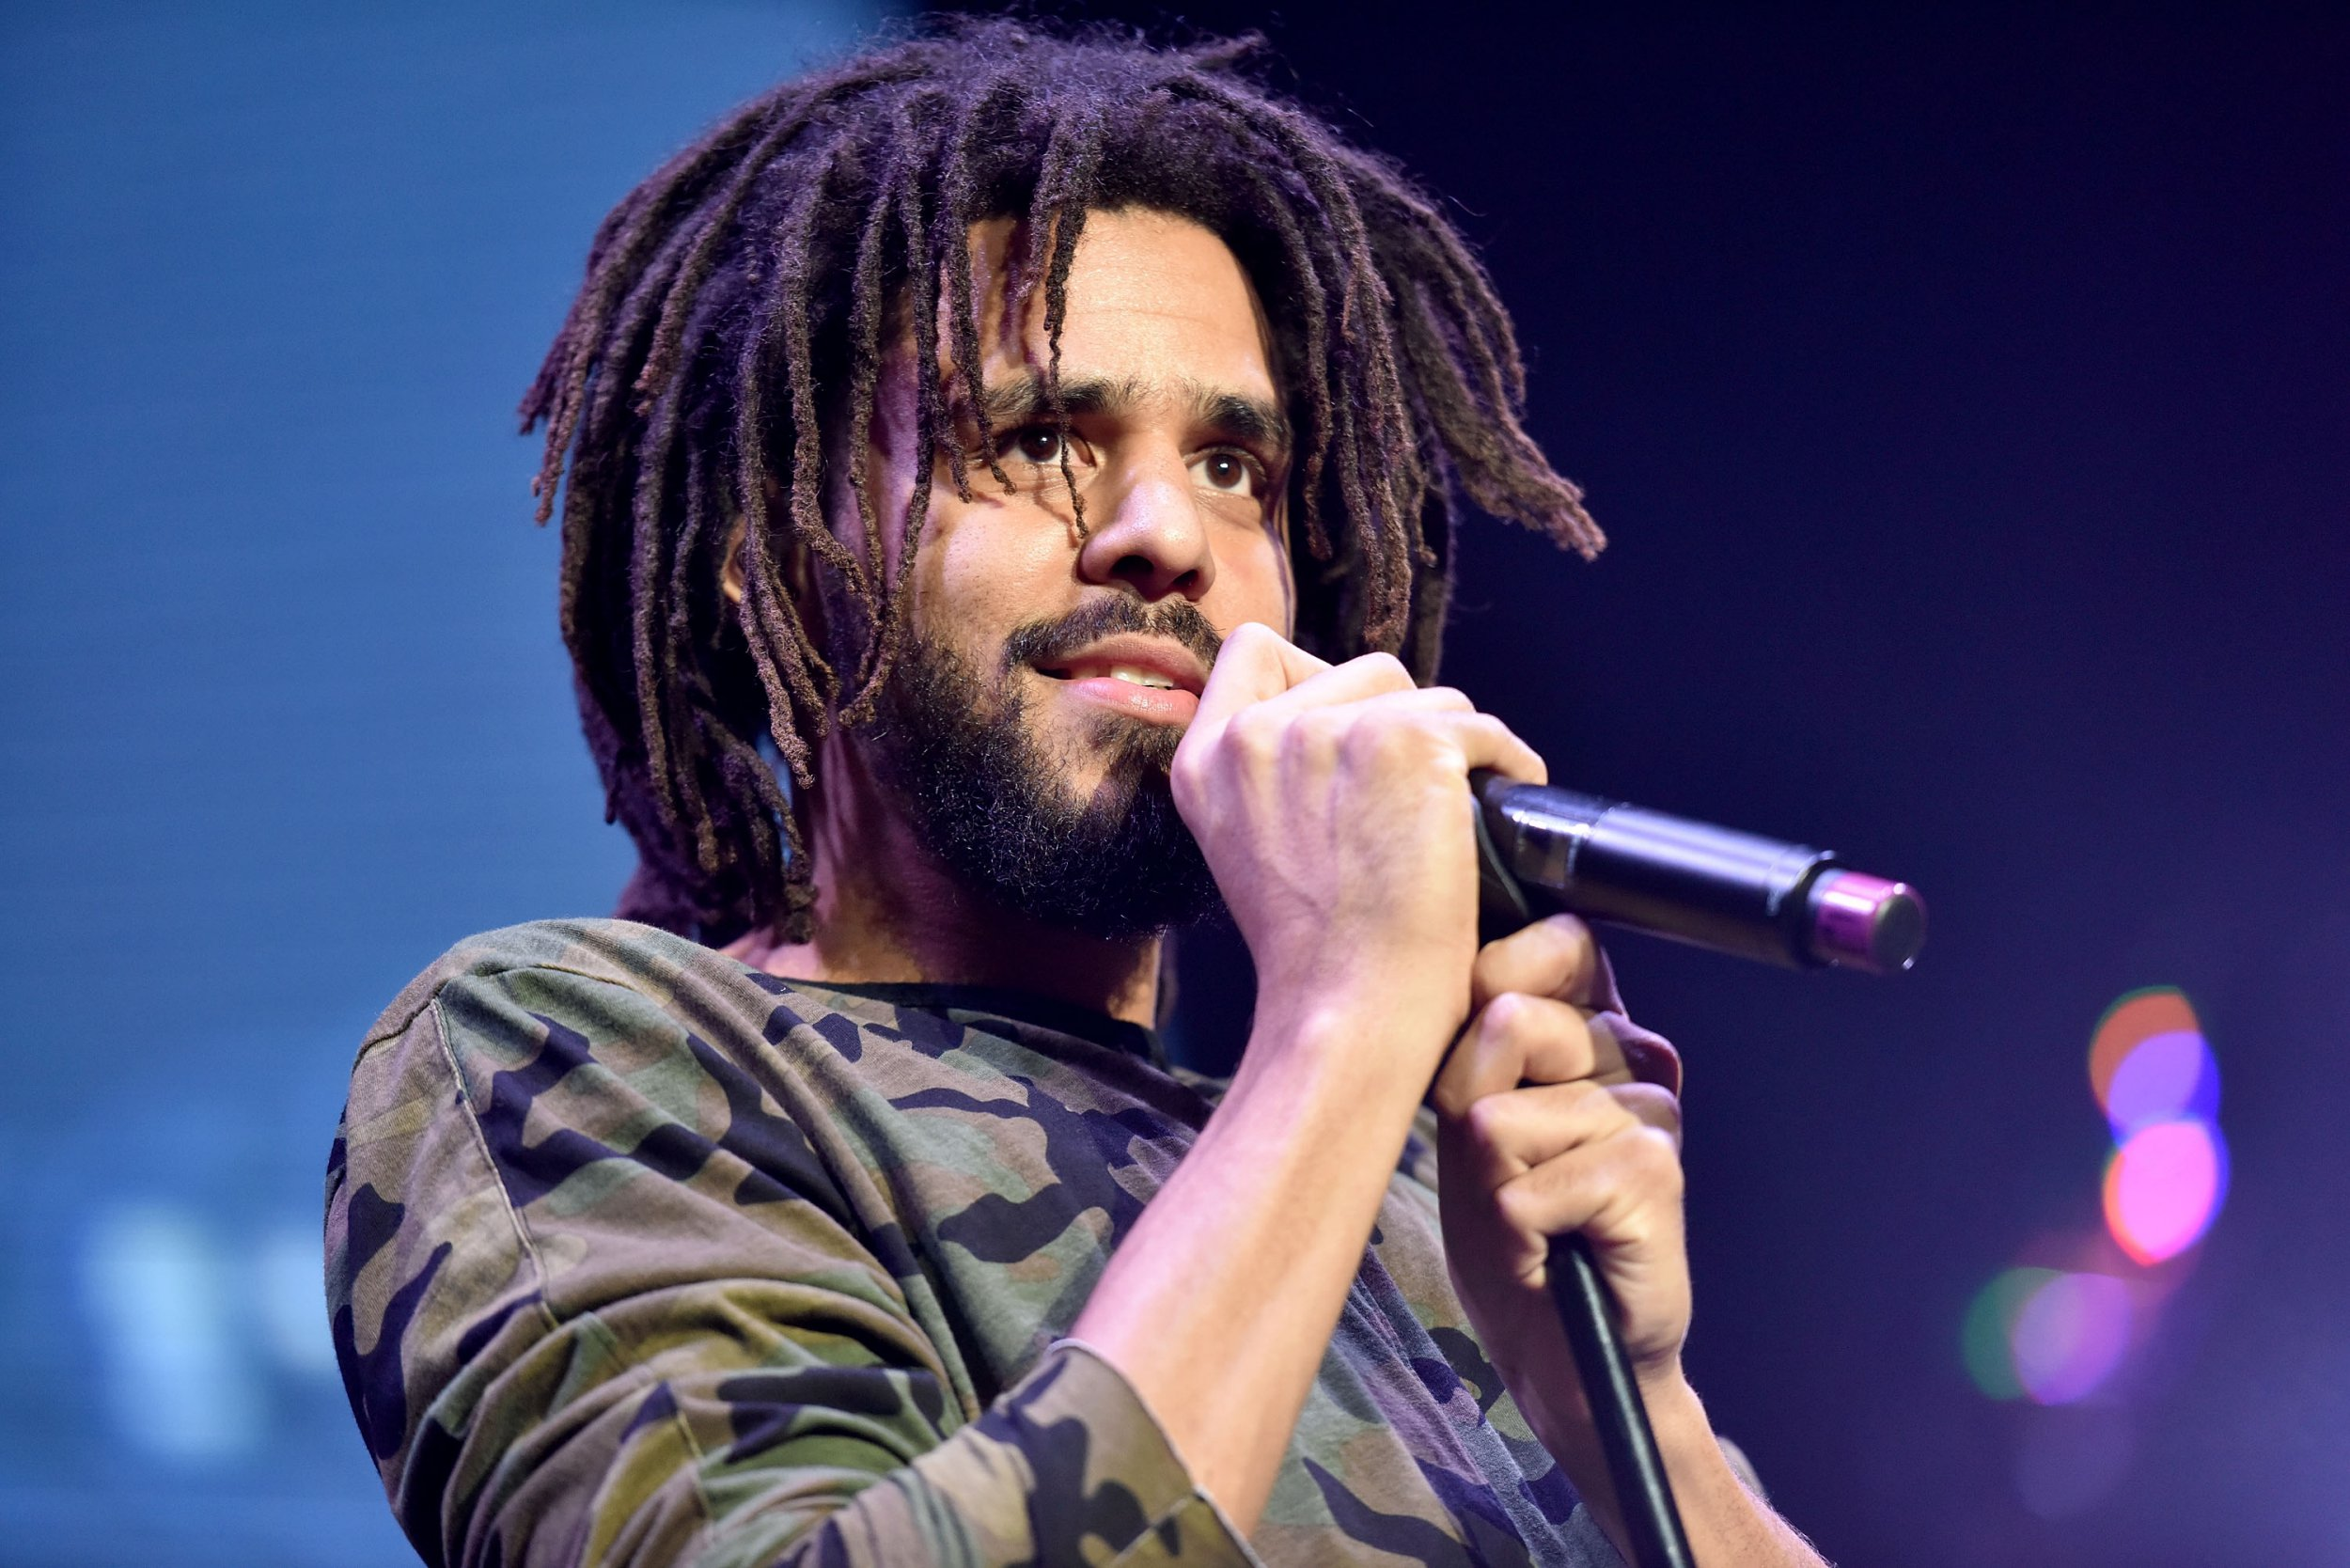 What are the lyrics to J Cole's Middle Child and when is the new album out?